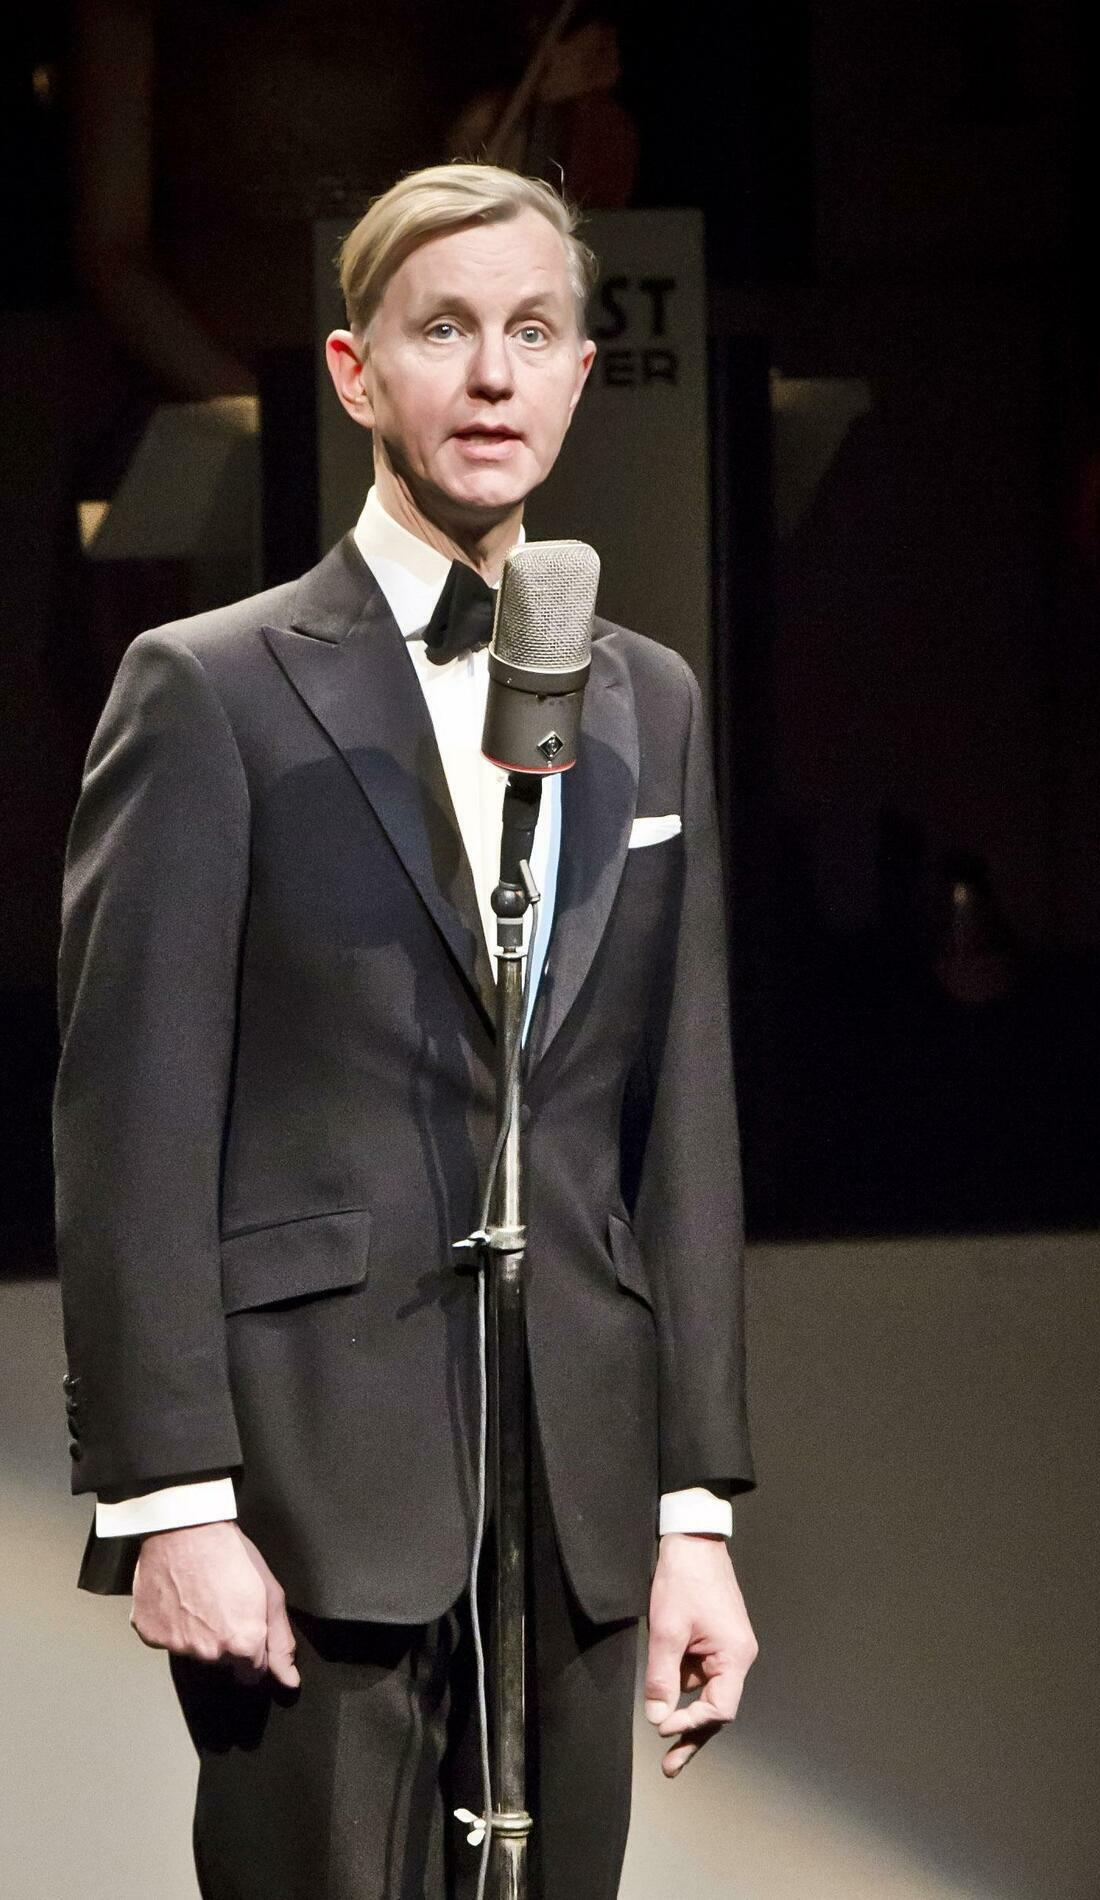 A Max Raabe live event